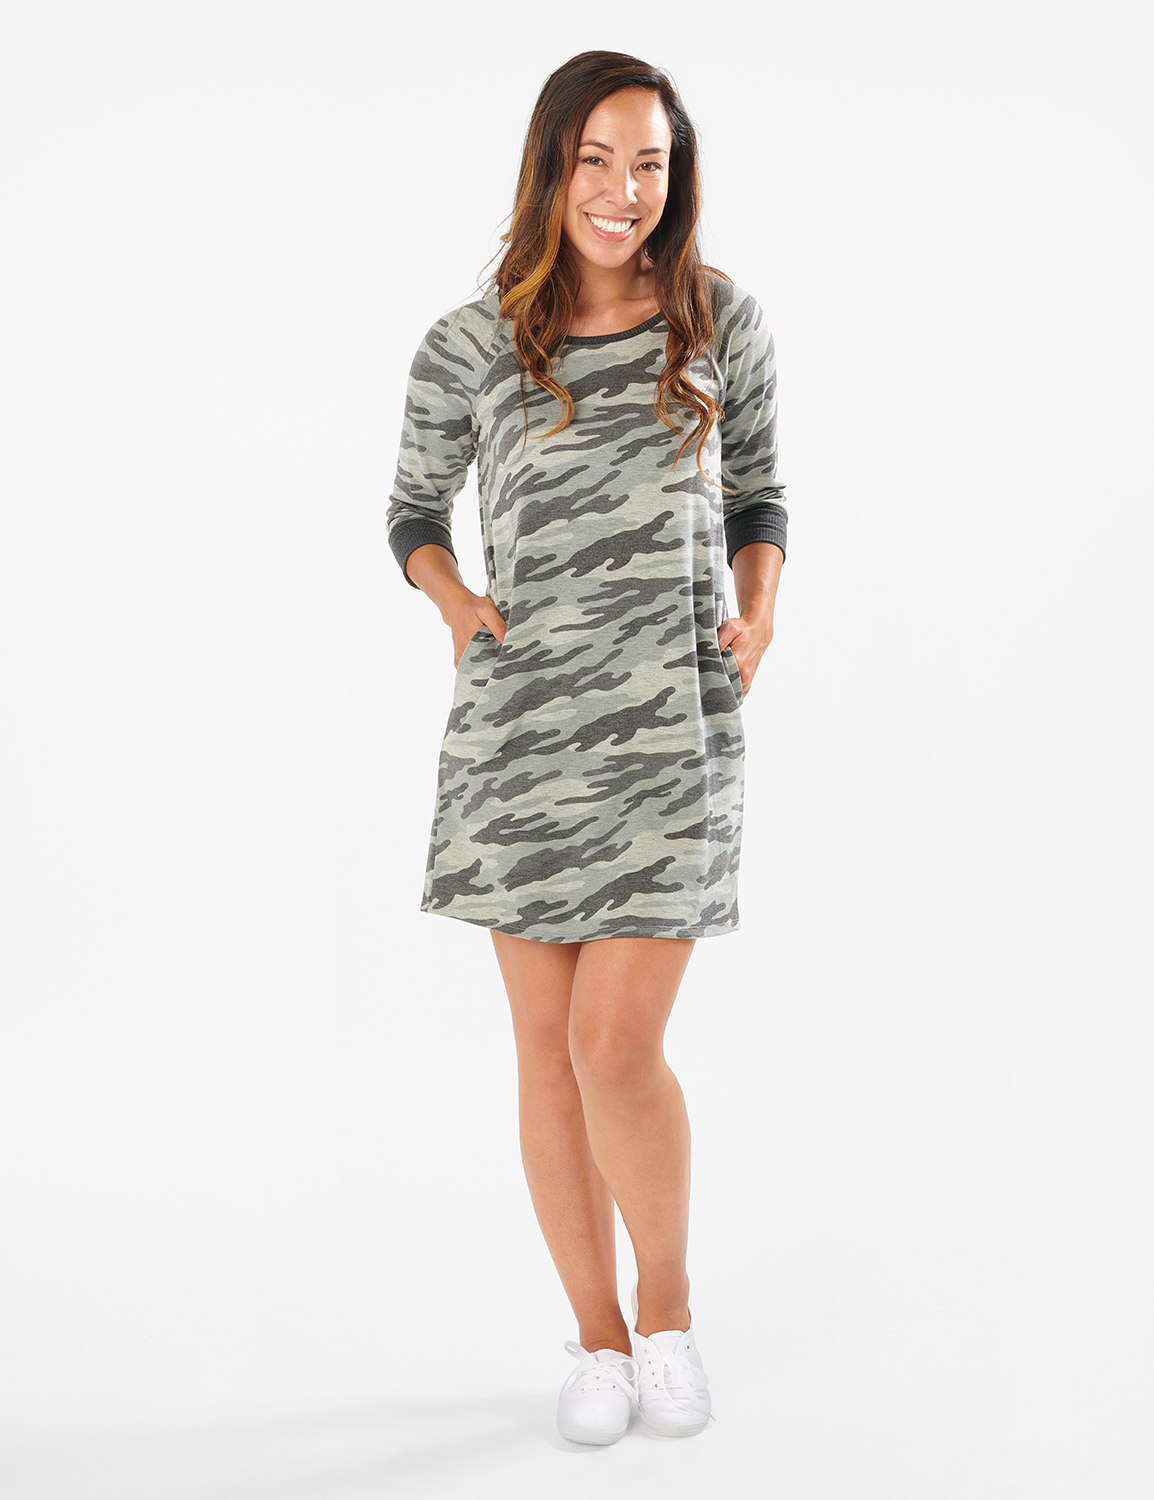 Camouflage Knit Dress - Misses -Charcoal - Front